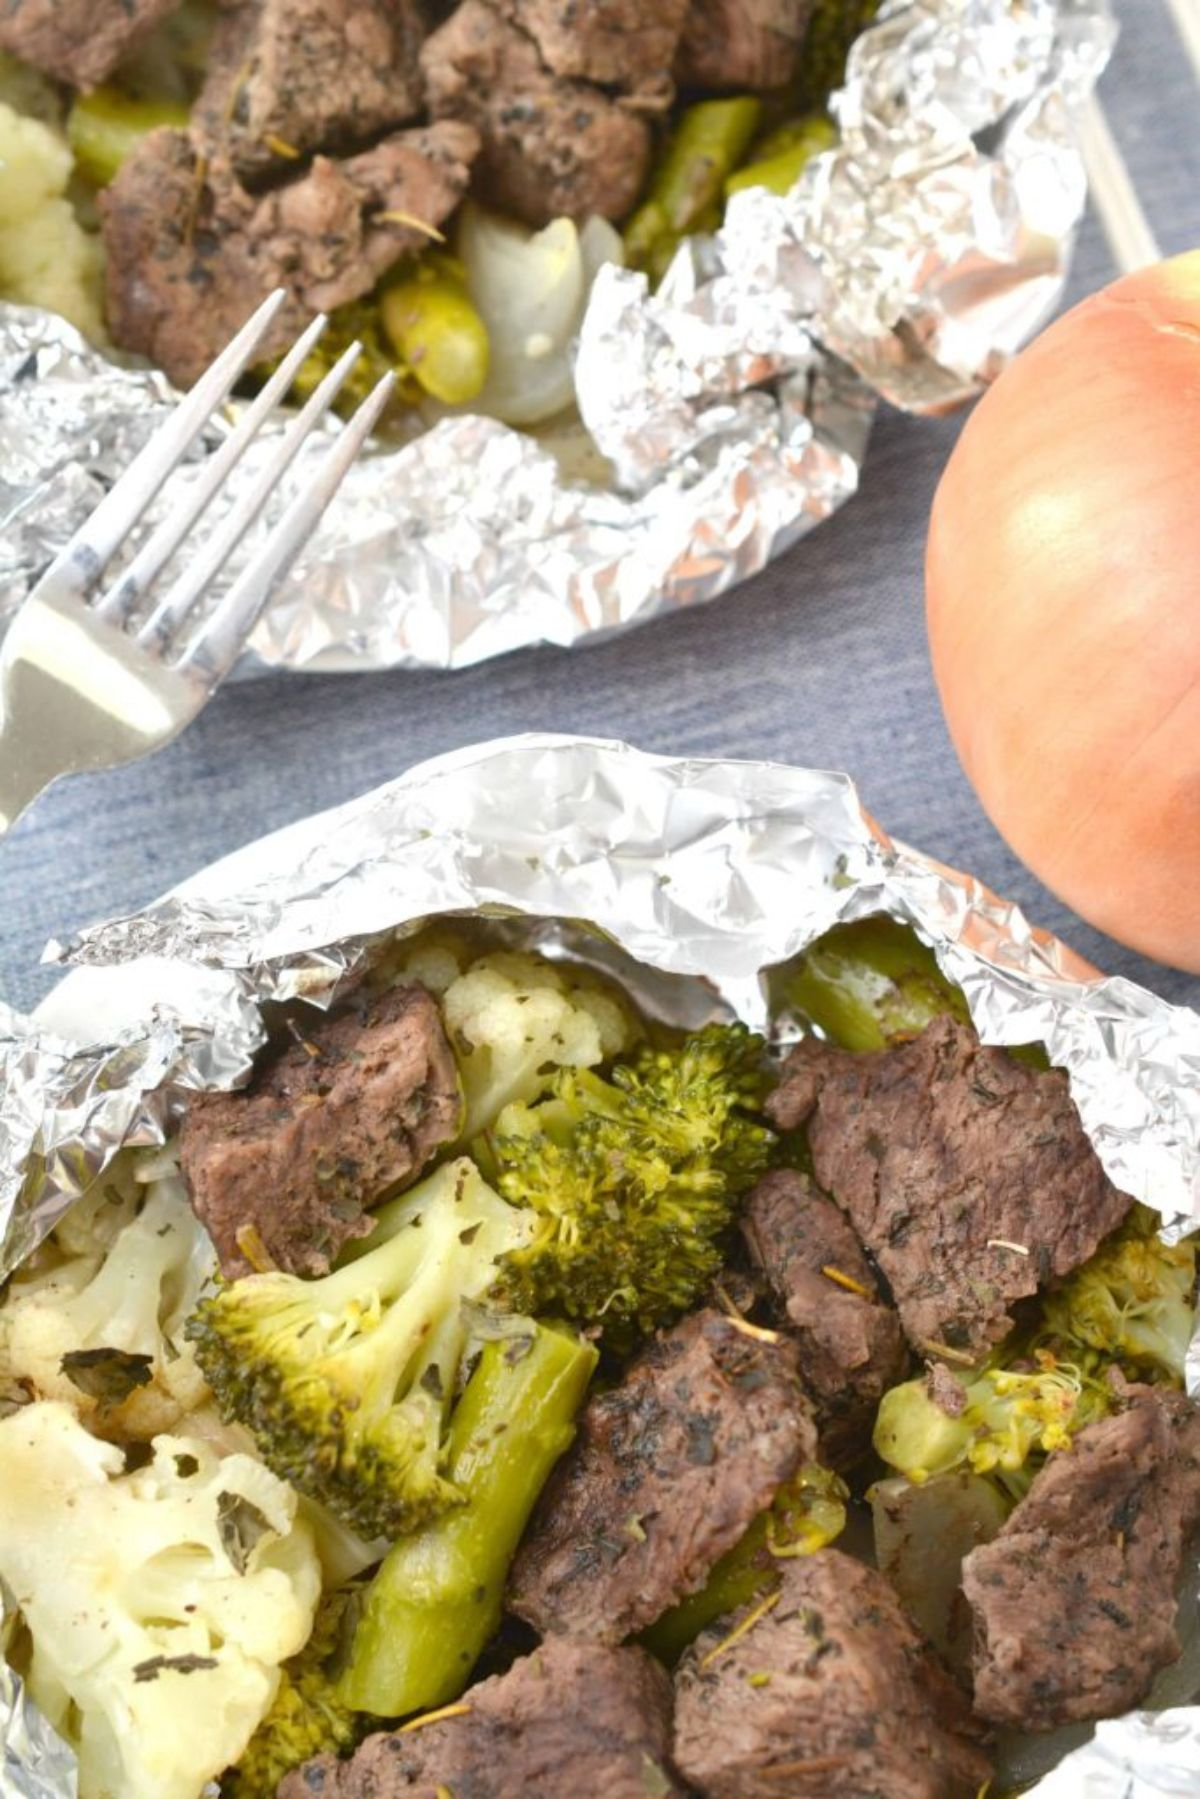 2 foil pockets are on a countertop, slightly undone. Inside are steak bites and broccoli florets. There is the top of a fork digging into one pocket